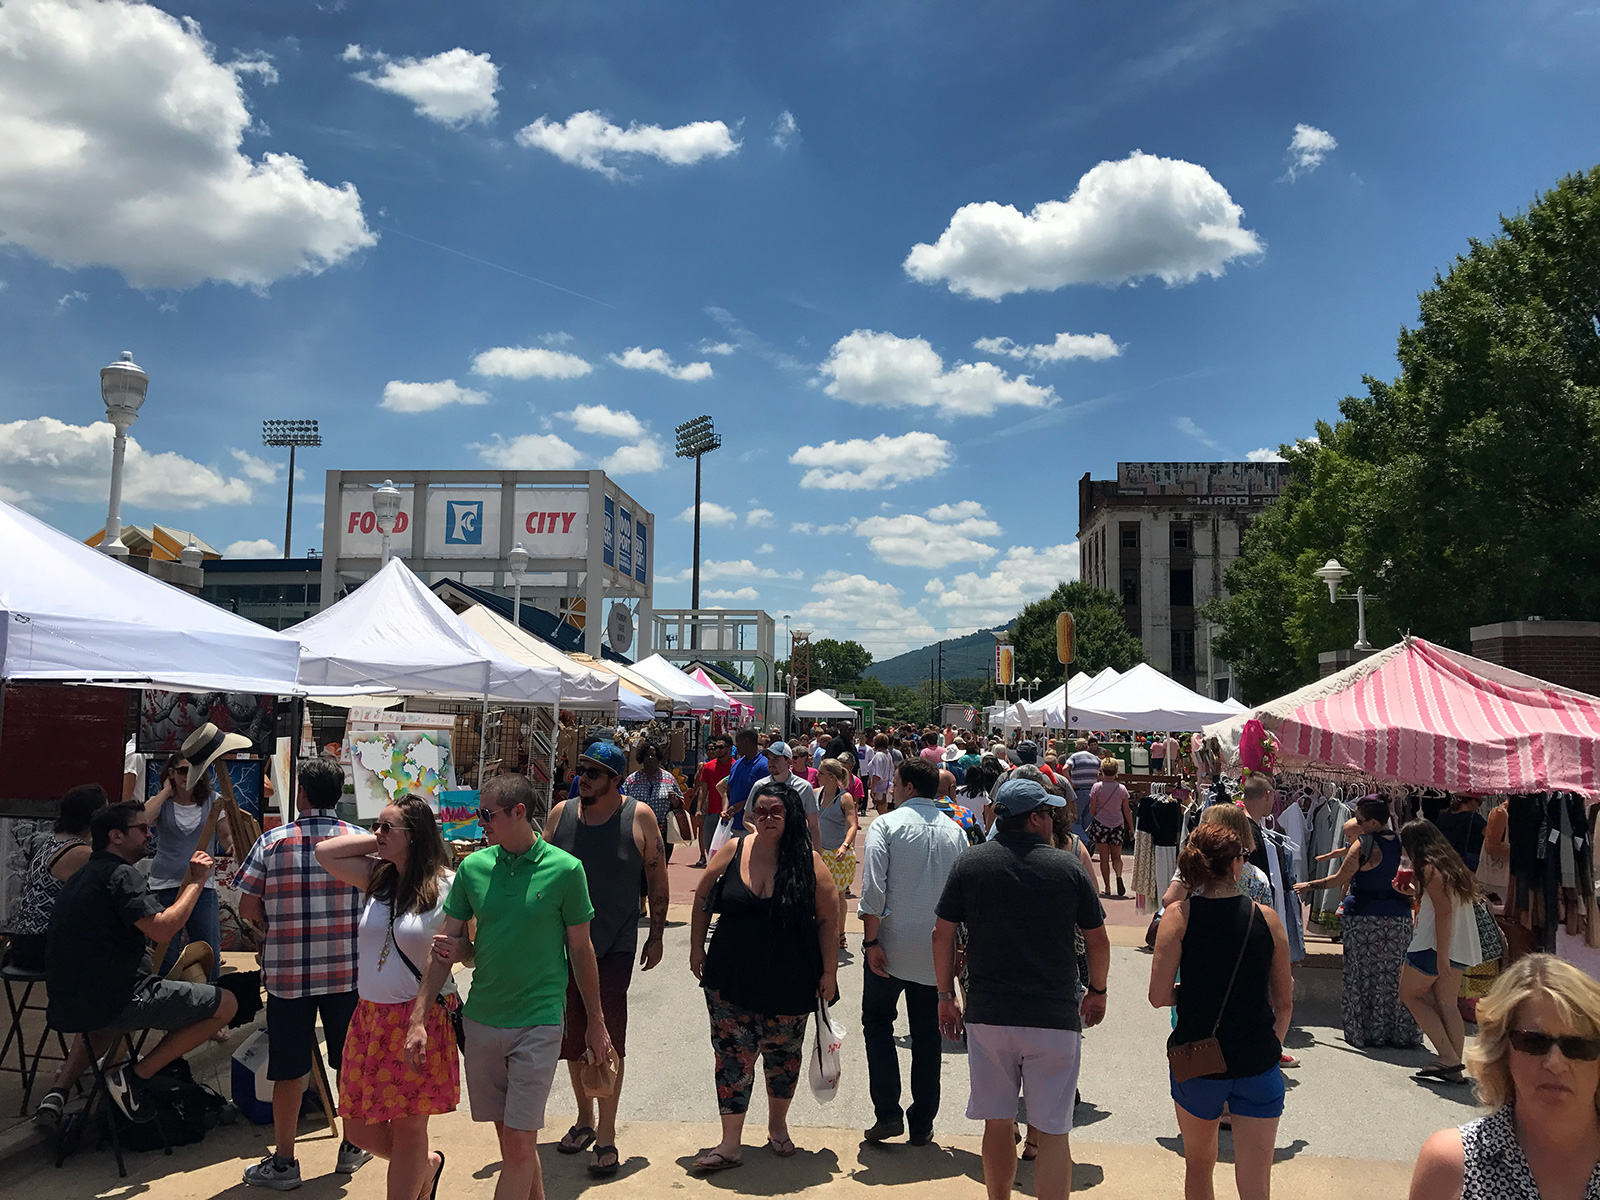 Chattanooga Market in Chattanooga, TN by Jets Like Taxis